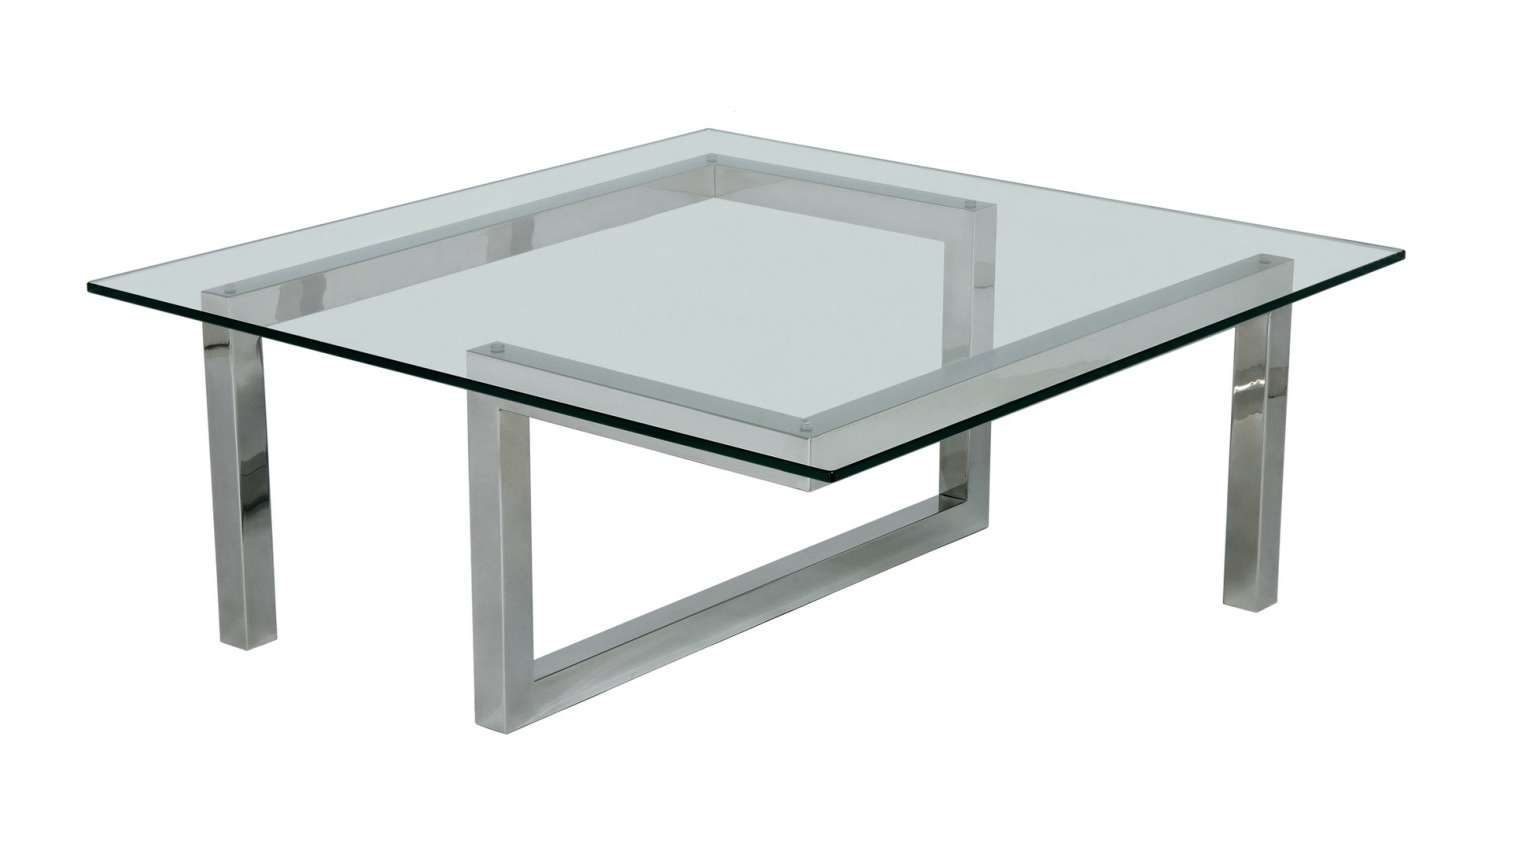 Table : Likable Black Glass Coffee Table With Chrome Legs Engaging With Regard To Well Liked Coffee Tables With Chrome Legs (View 18 of 20)